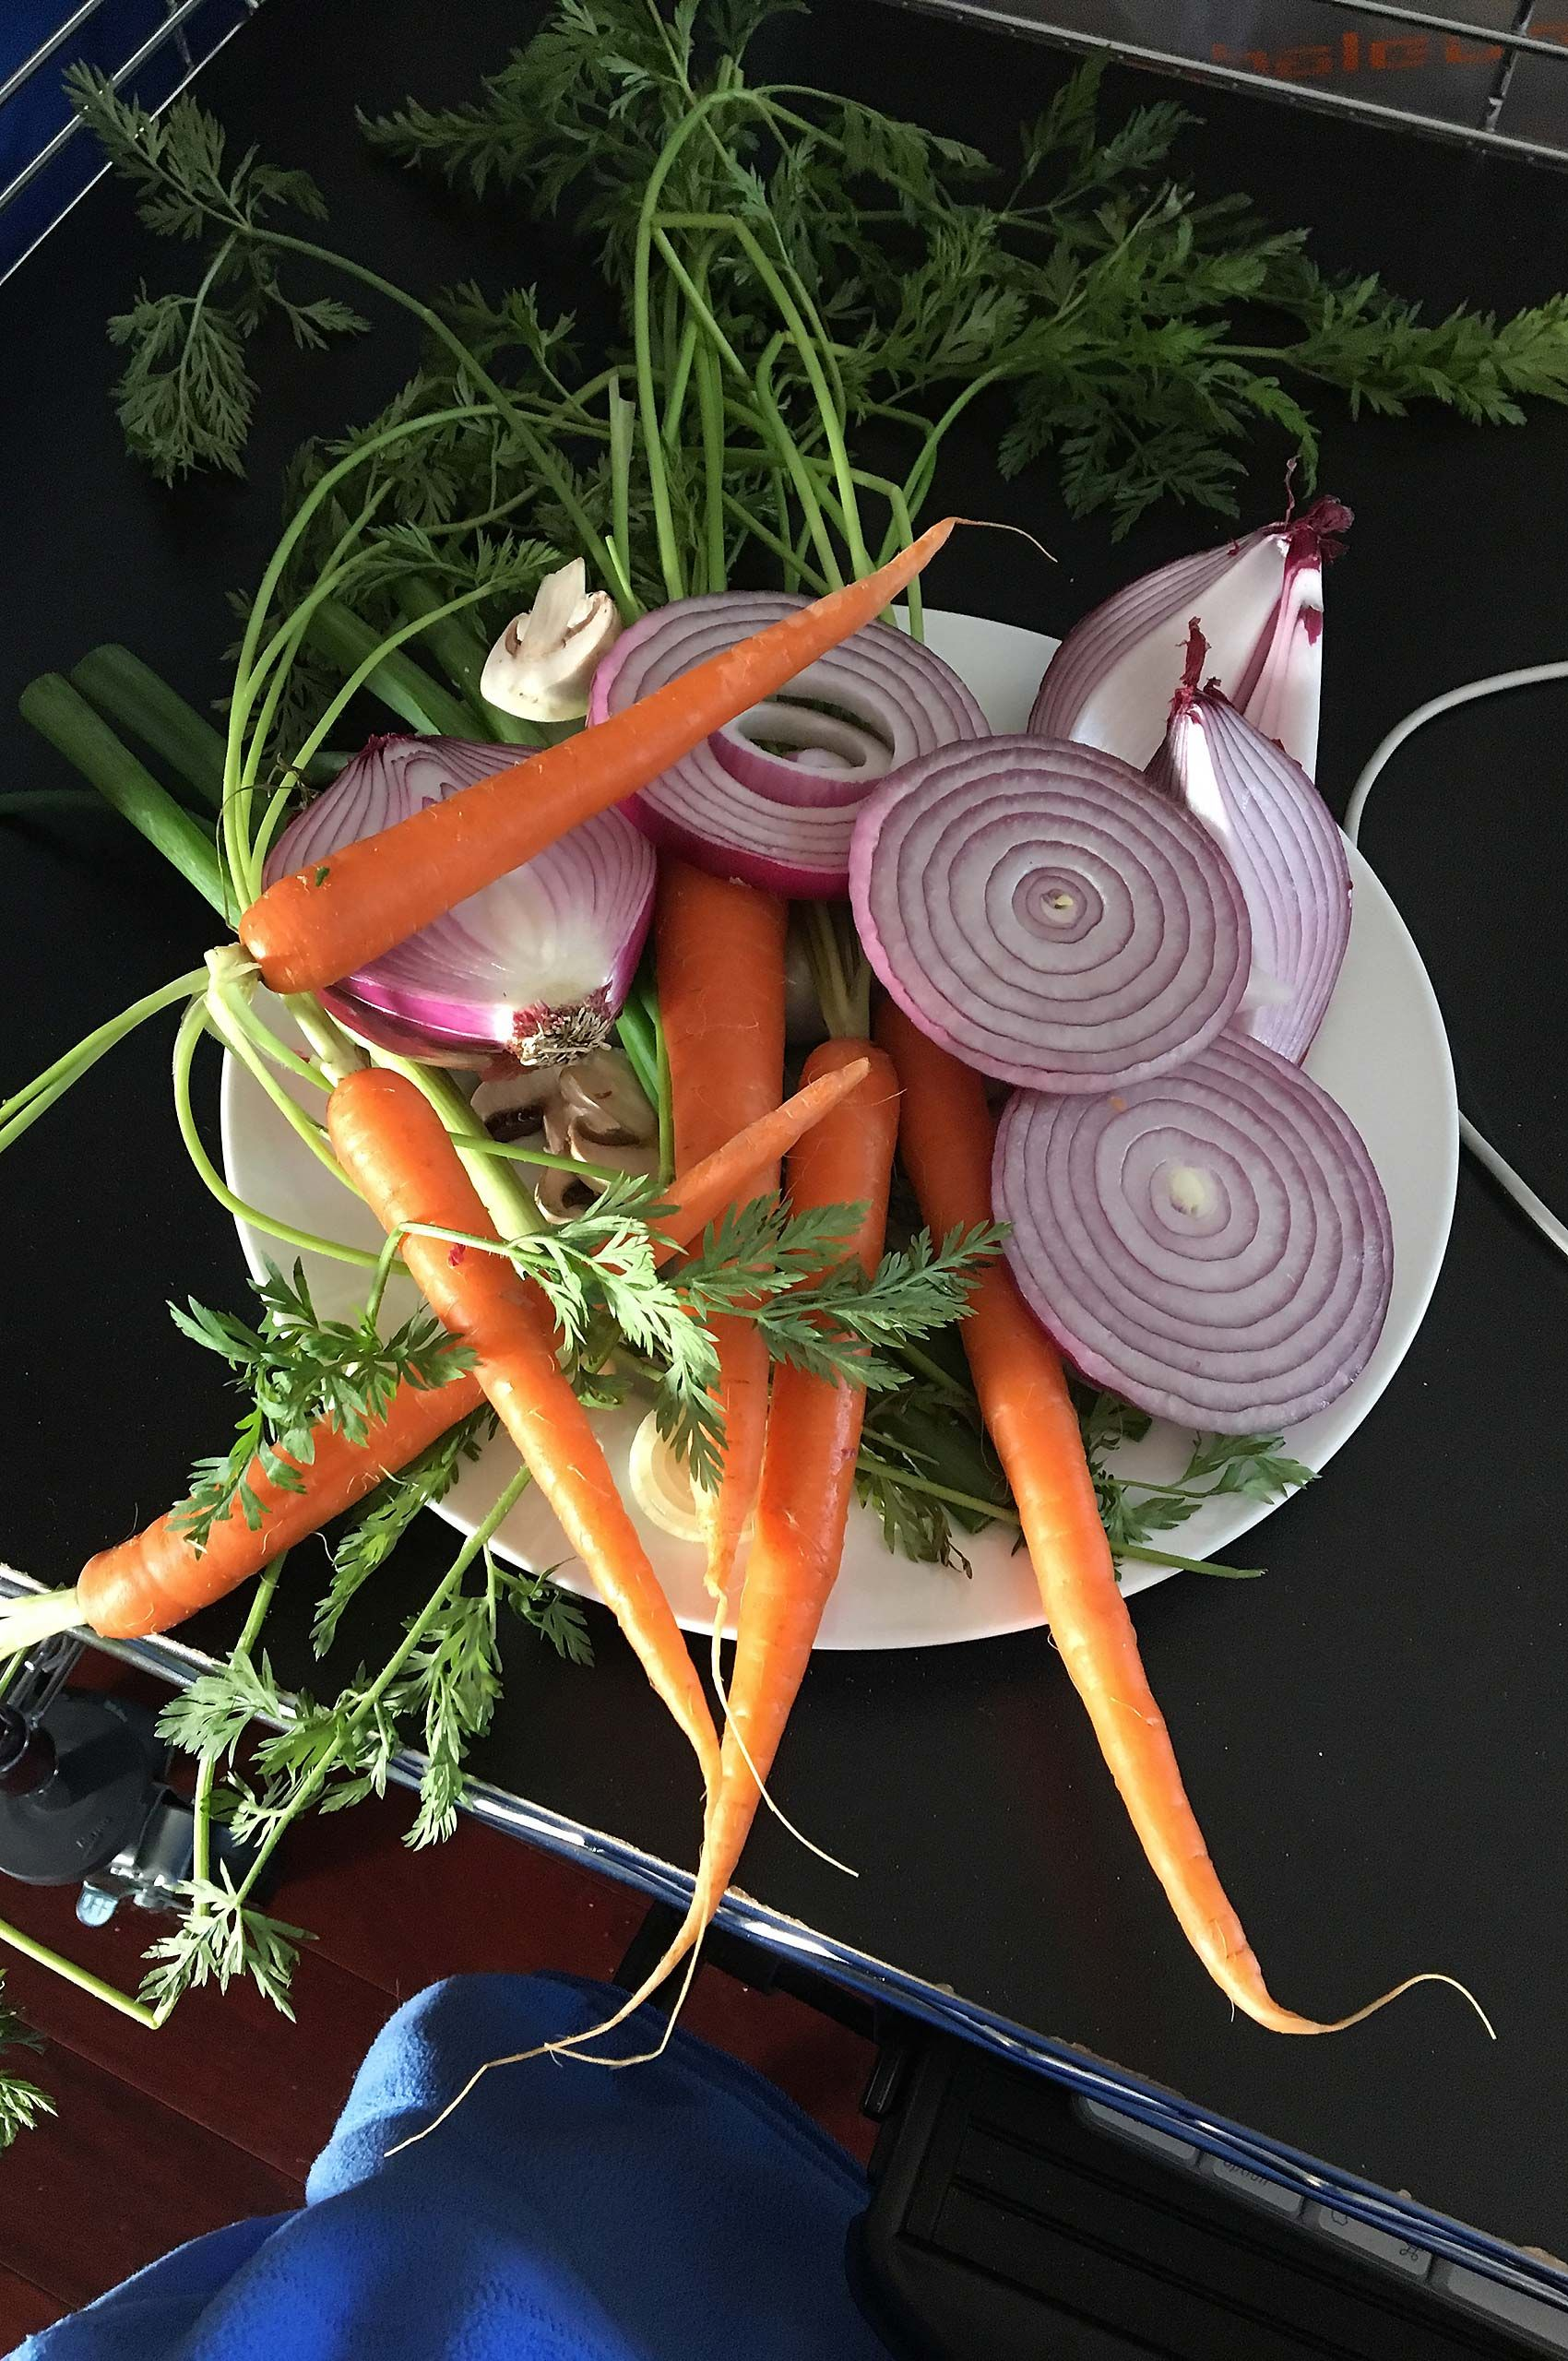 Sliced up onions and carrots on a photo set